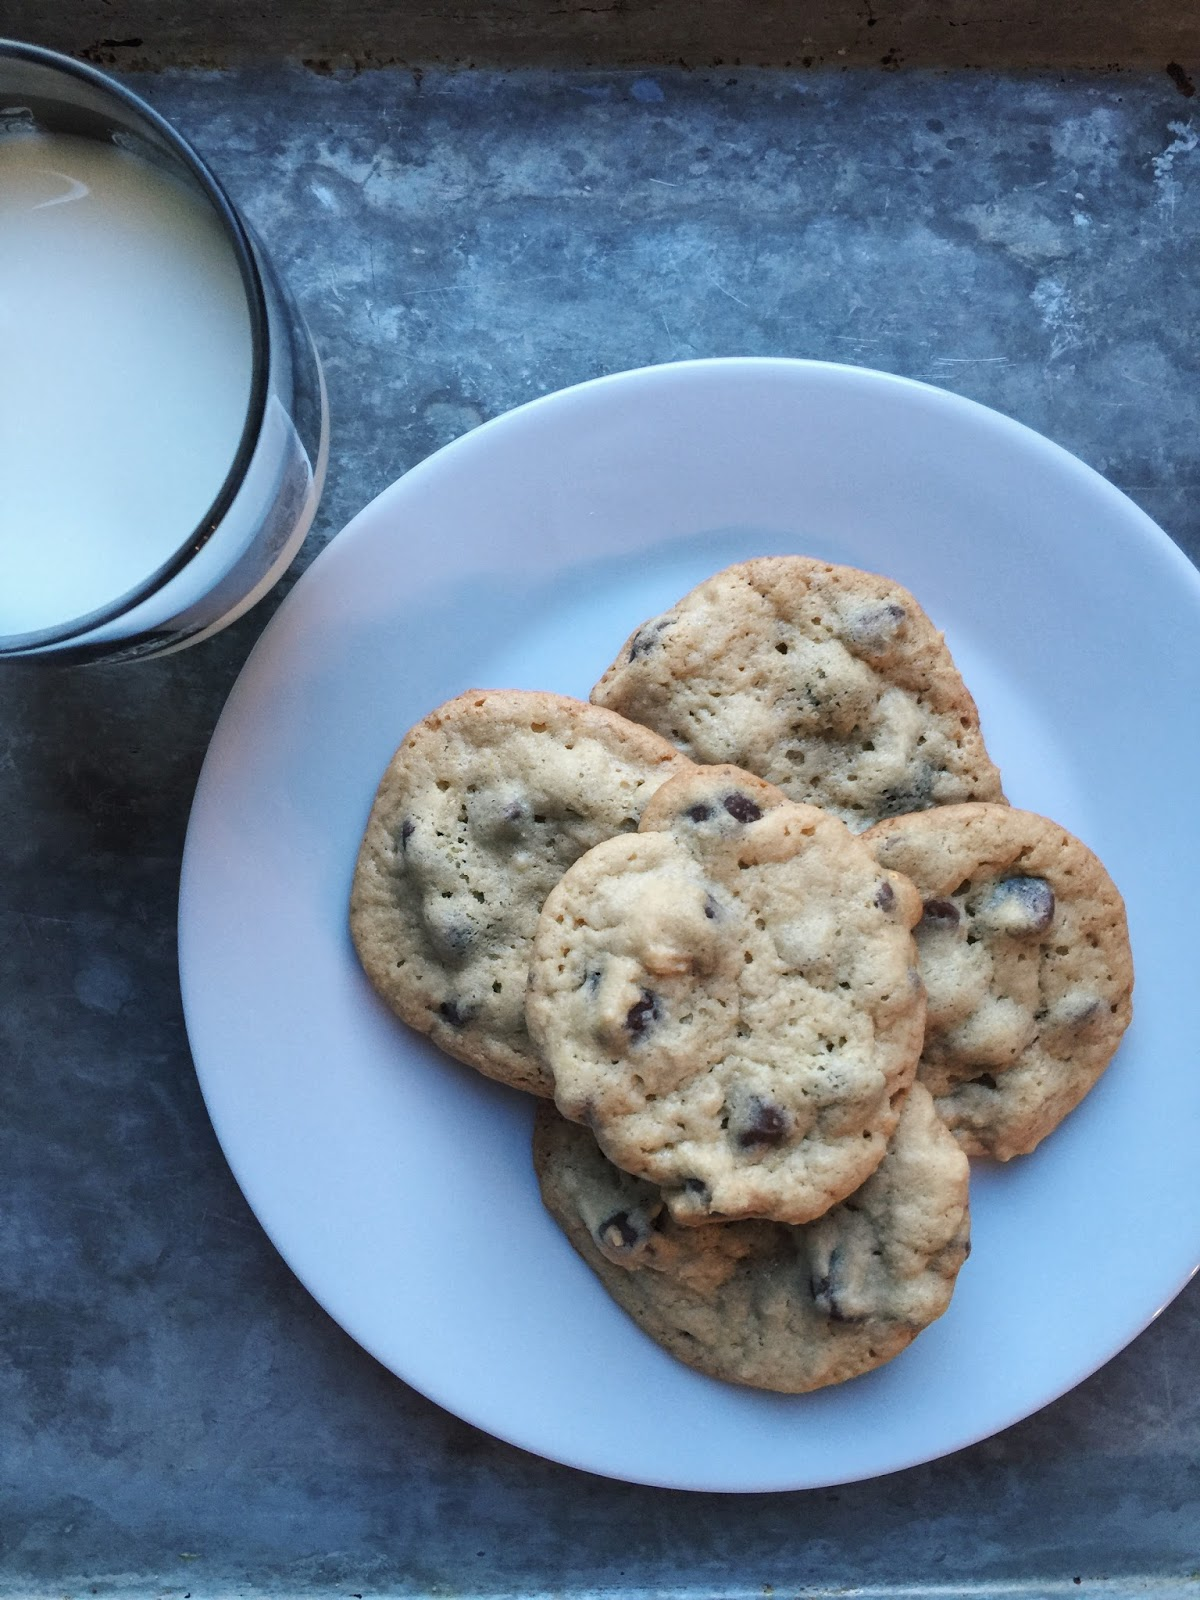 http://www.aglimpseinsideblog.com/2016/07/chocolate-chip-malted-milk-cookies.html